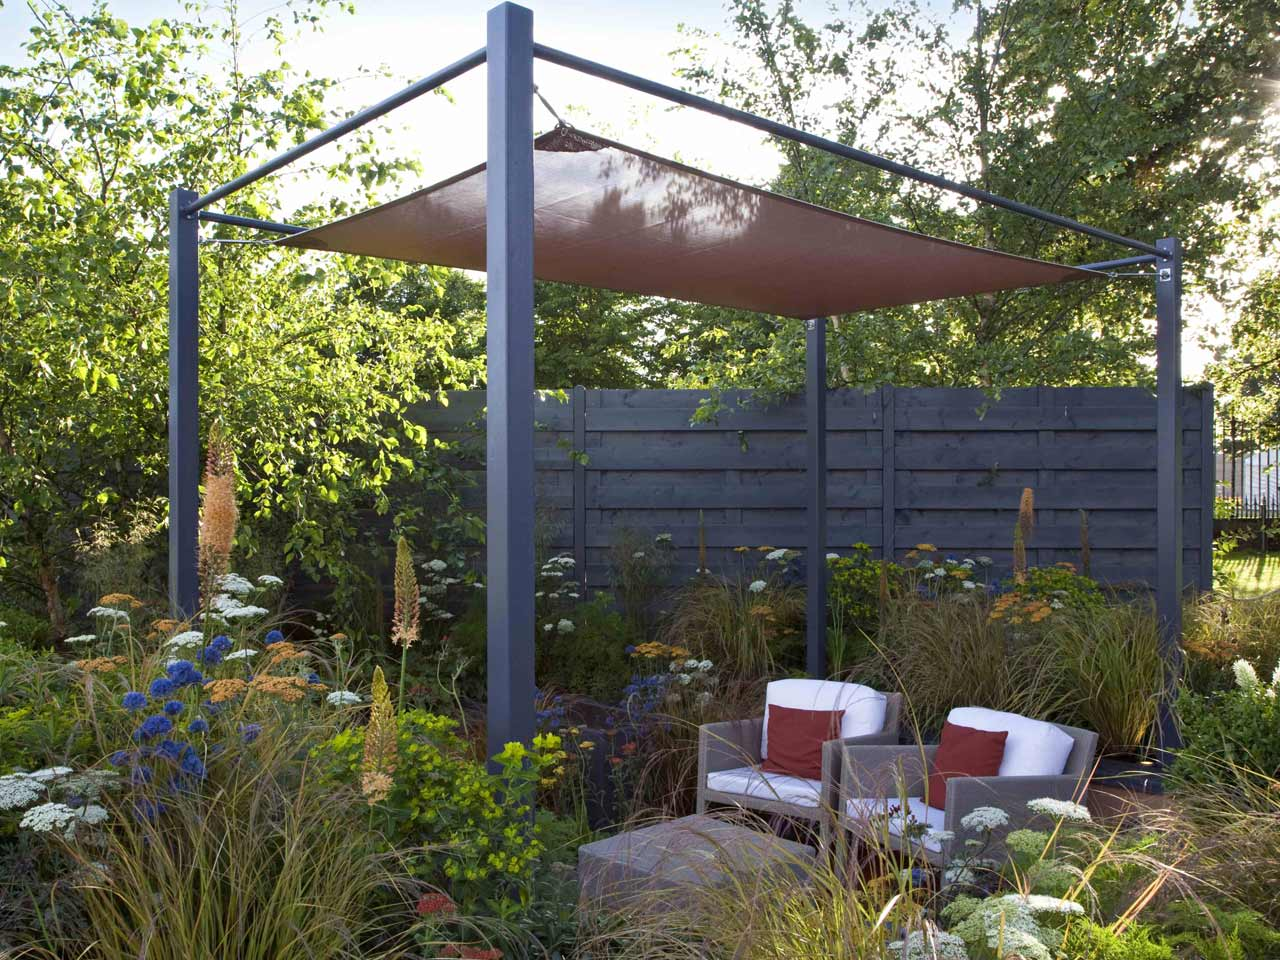 Eight tips for designing a Chelsea-style show garden at home - Saga